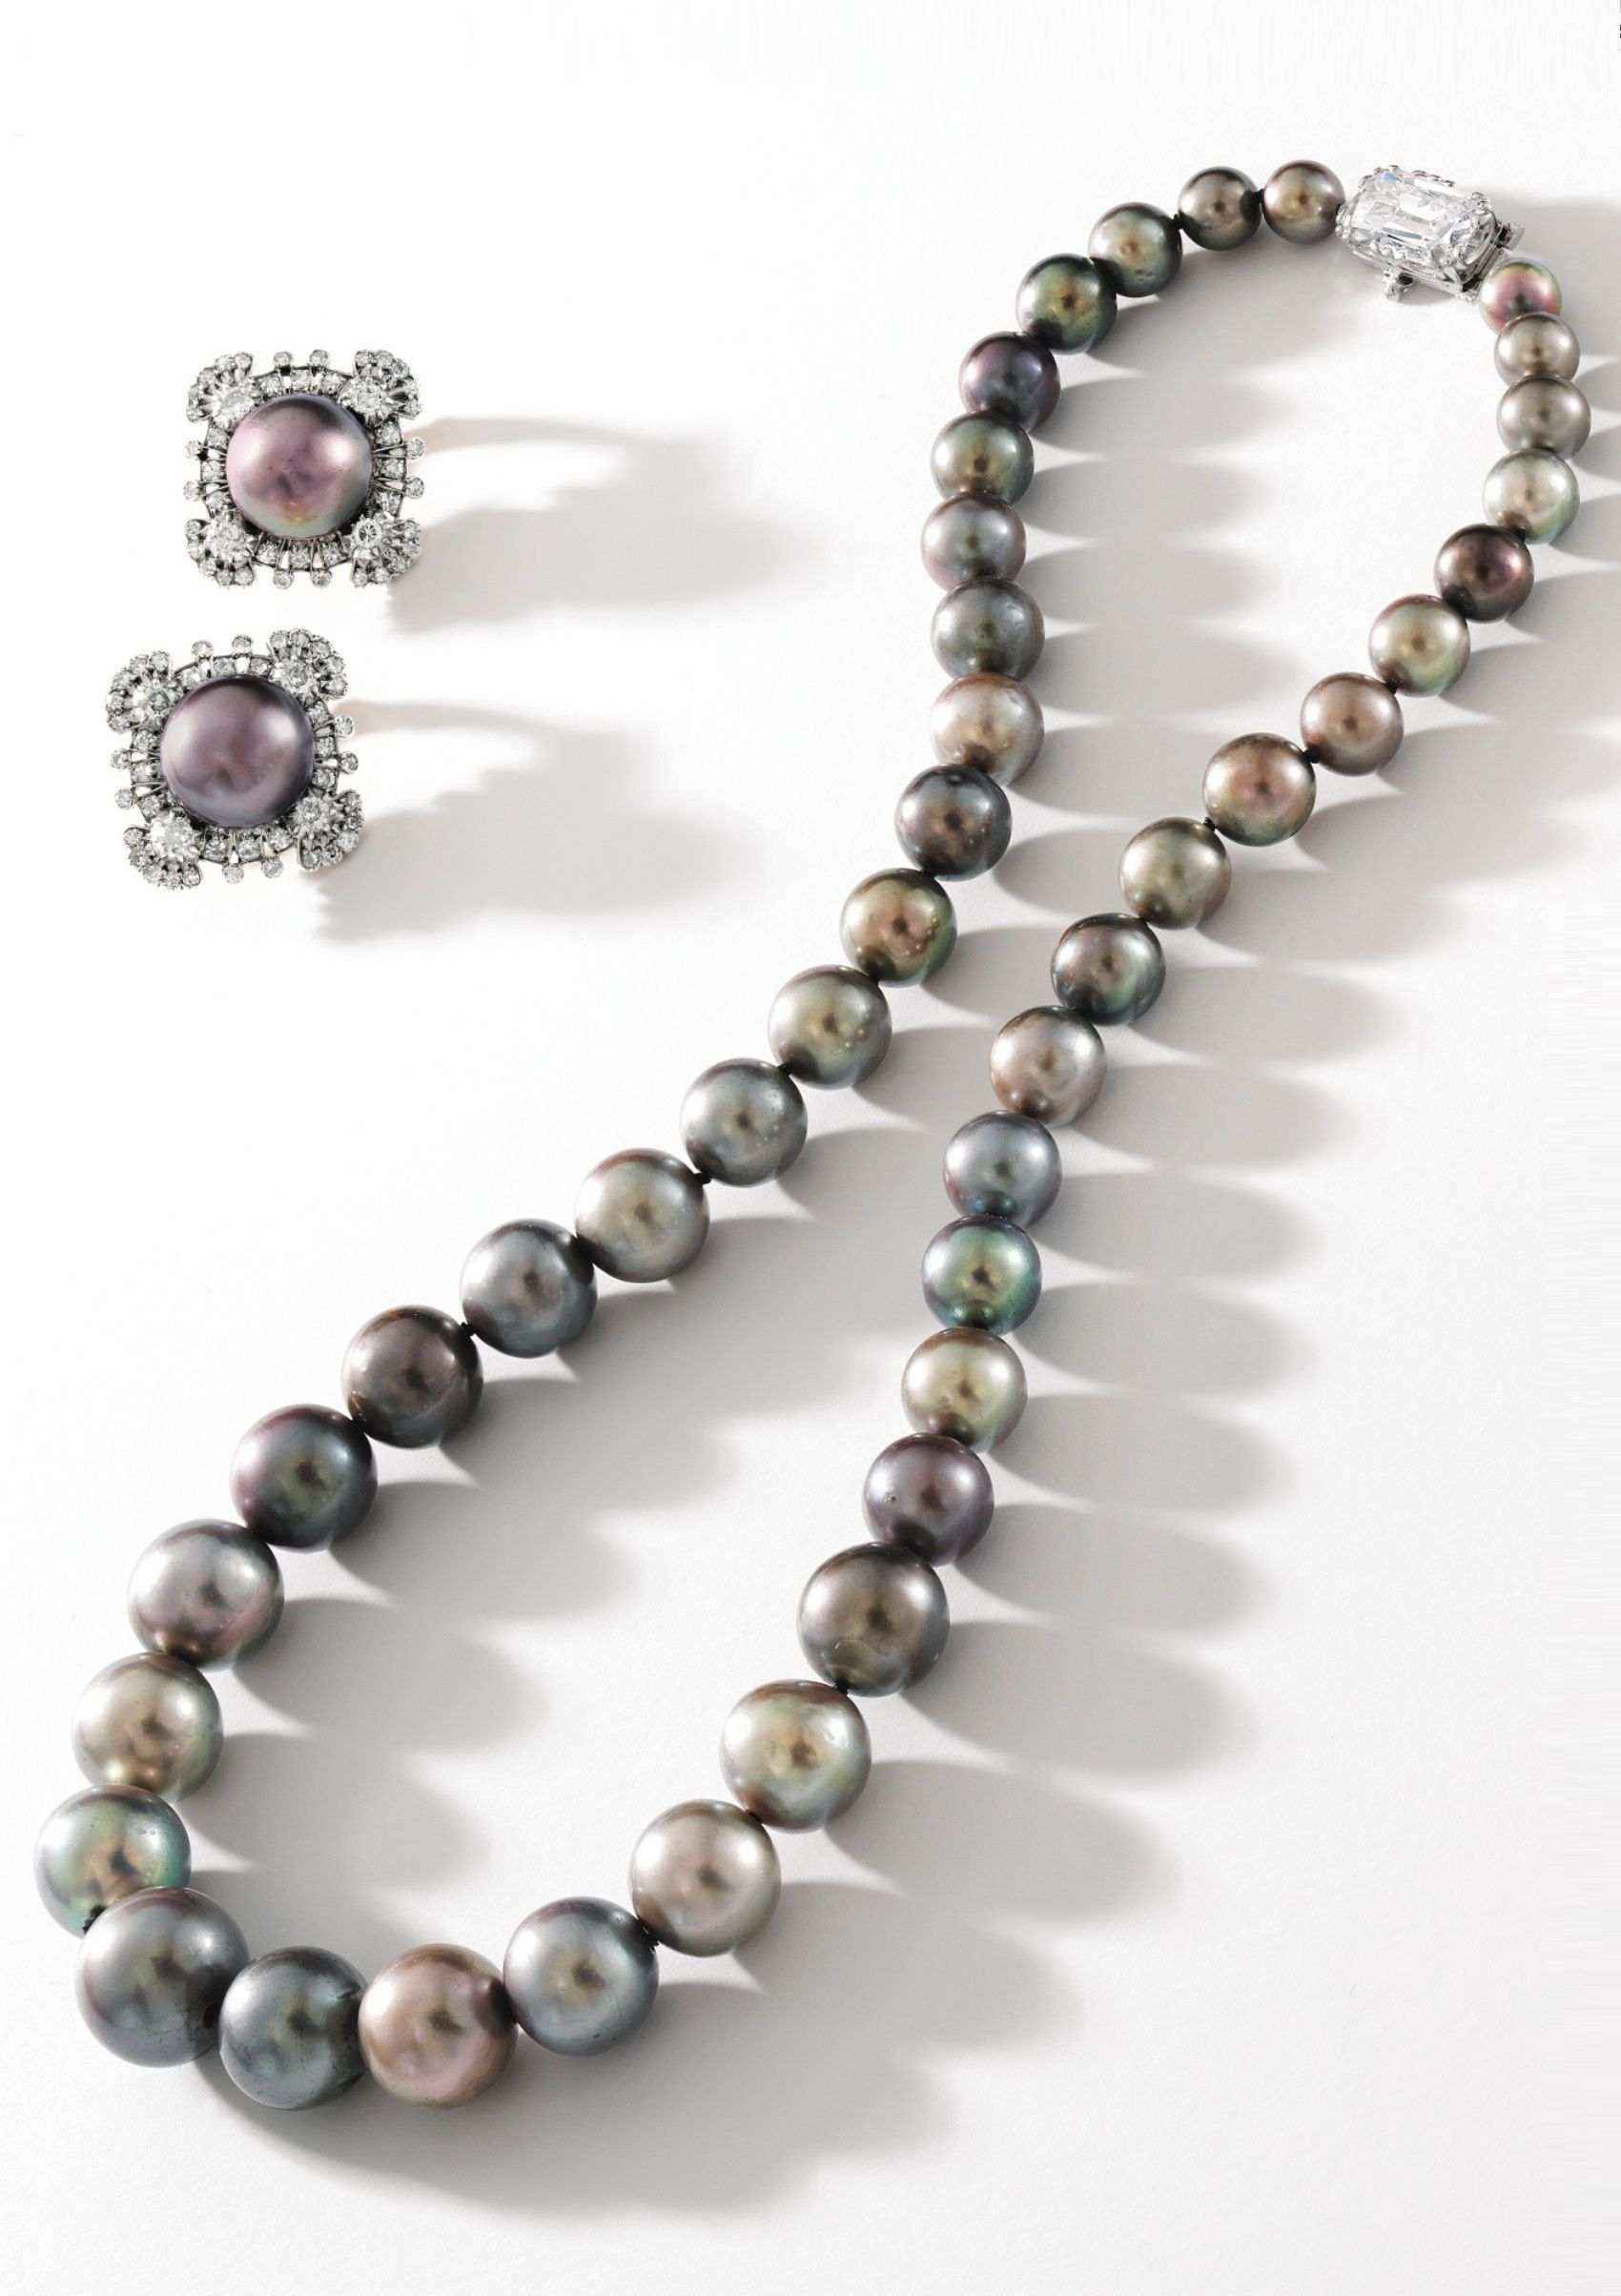 3 Brins Genuine Natural Rose Baroque Freshwater Pearl Necklace 8-9 mm